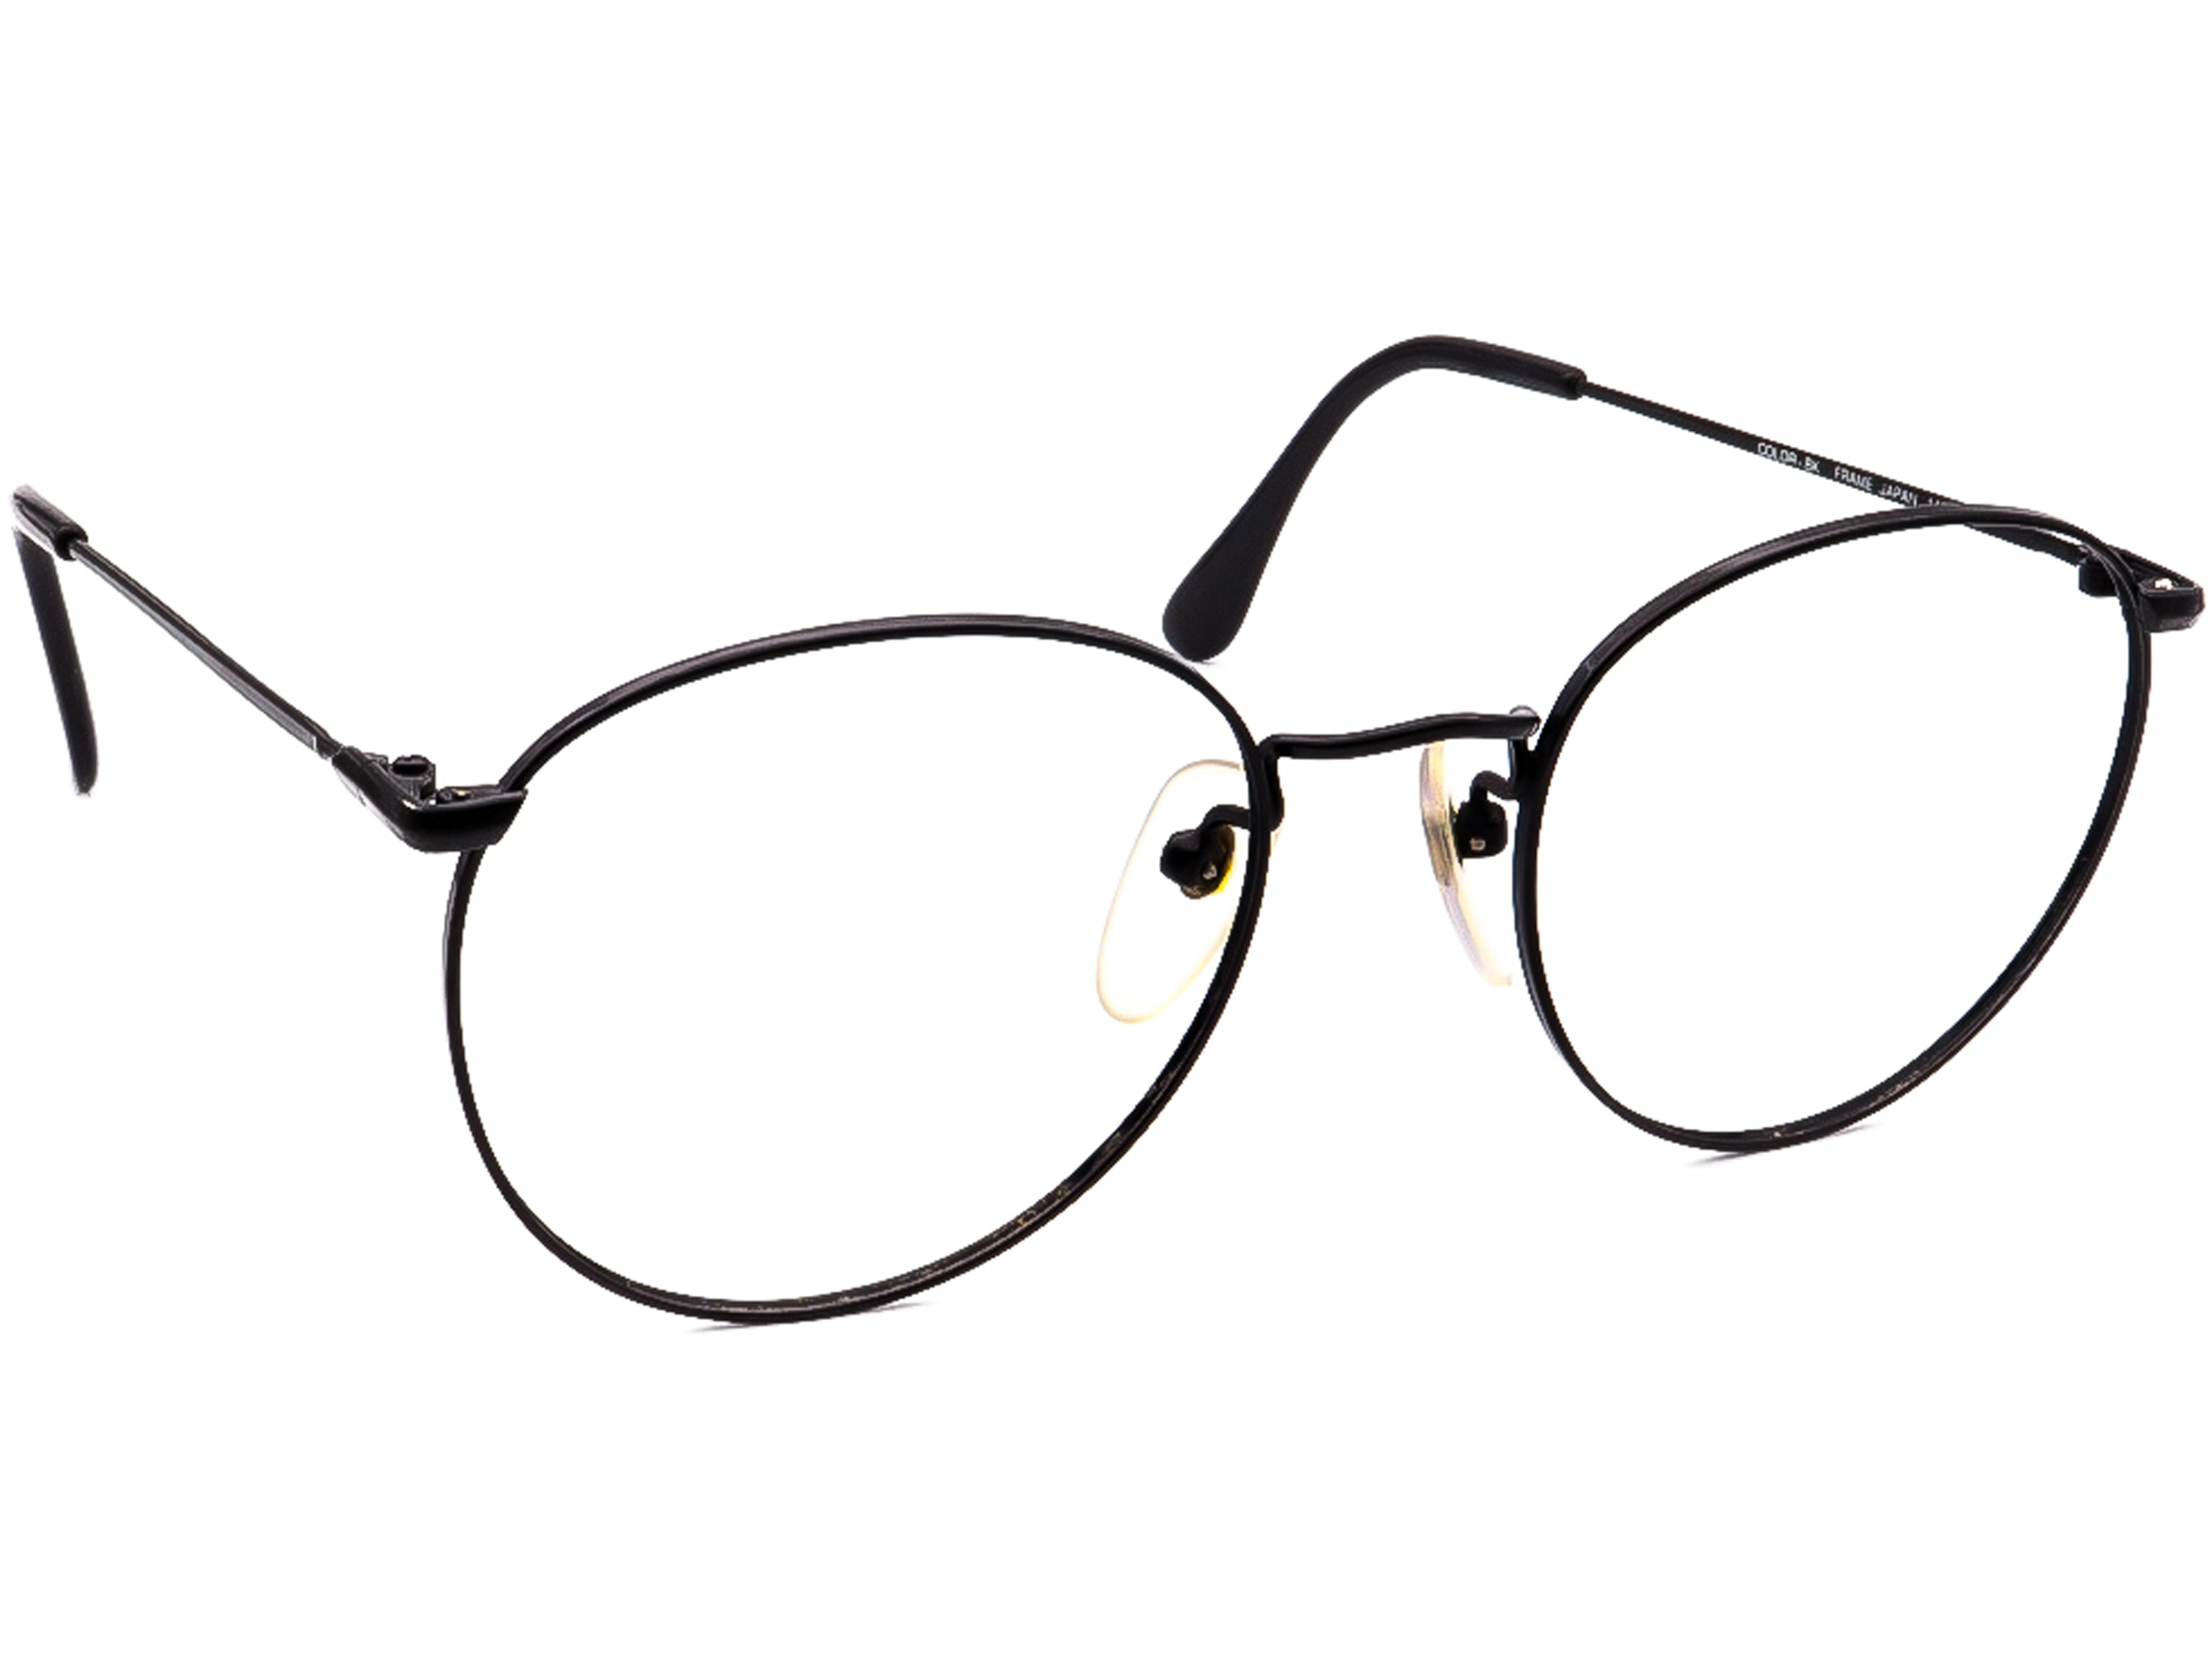 Charmant 4220 Color-Bk Eyeglasses